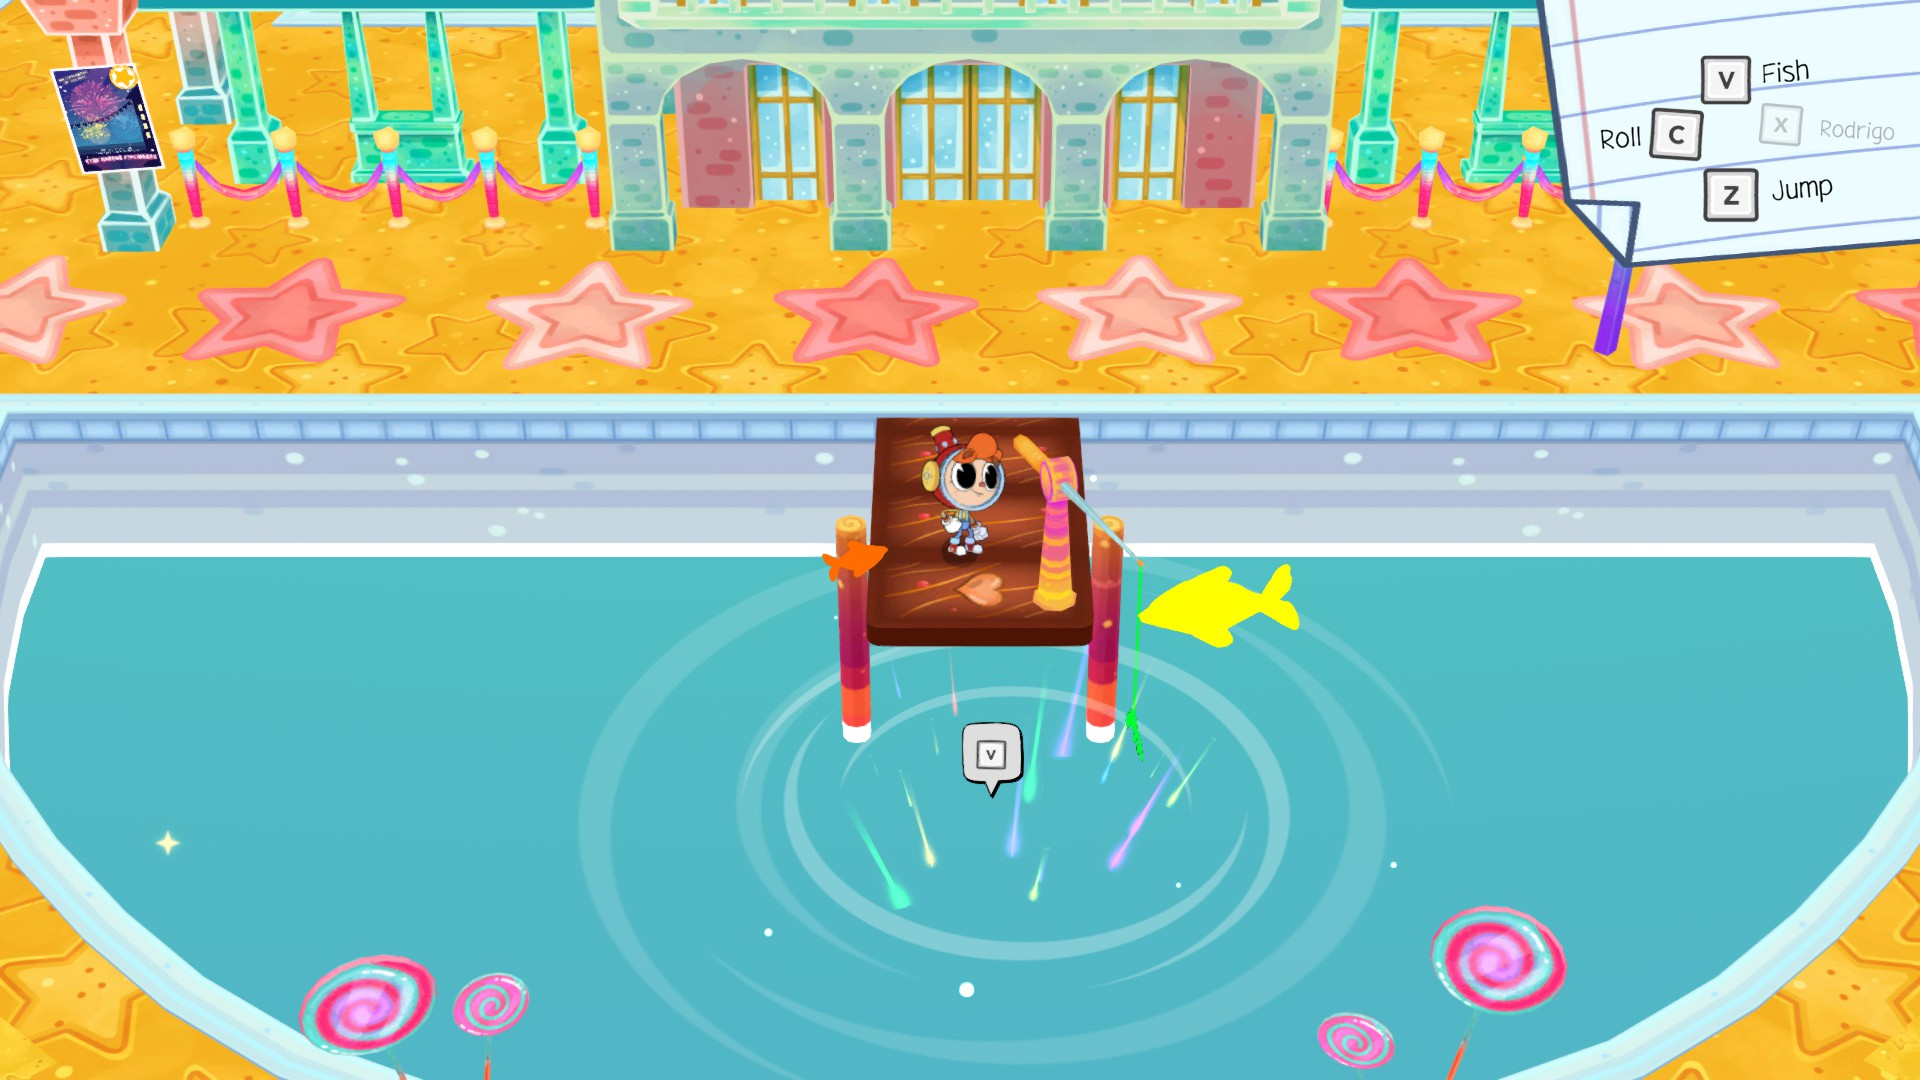 Rainbow Billy: The Curse of the Leviathan - How to Find 12 Rainbow Sparklers in Game Tips - Fishing Pond Sparklers - 31D4EB1